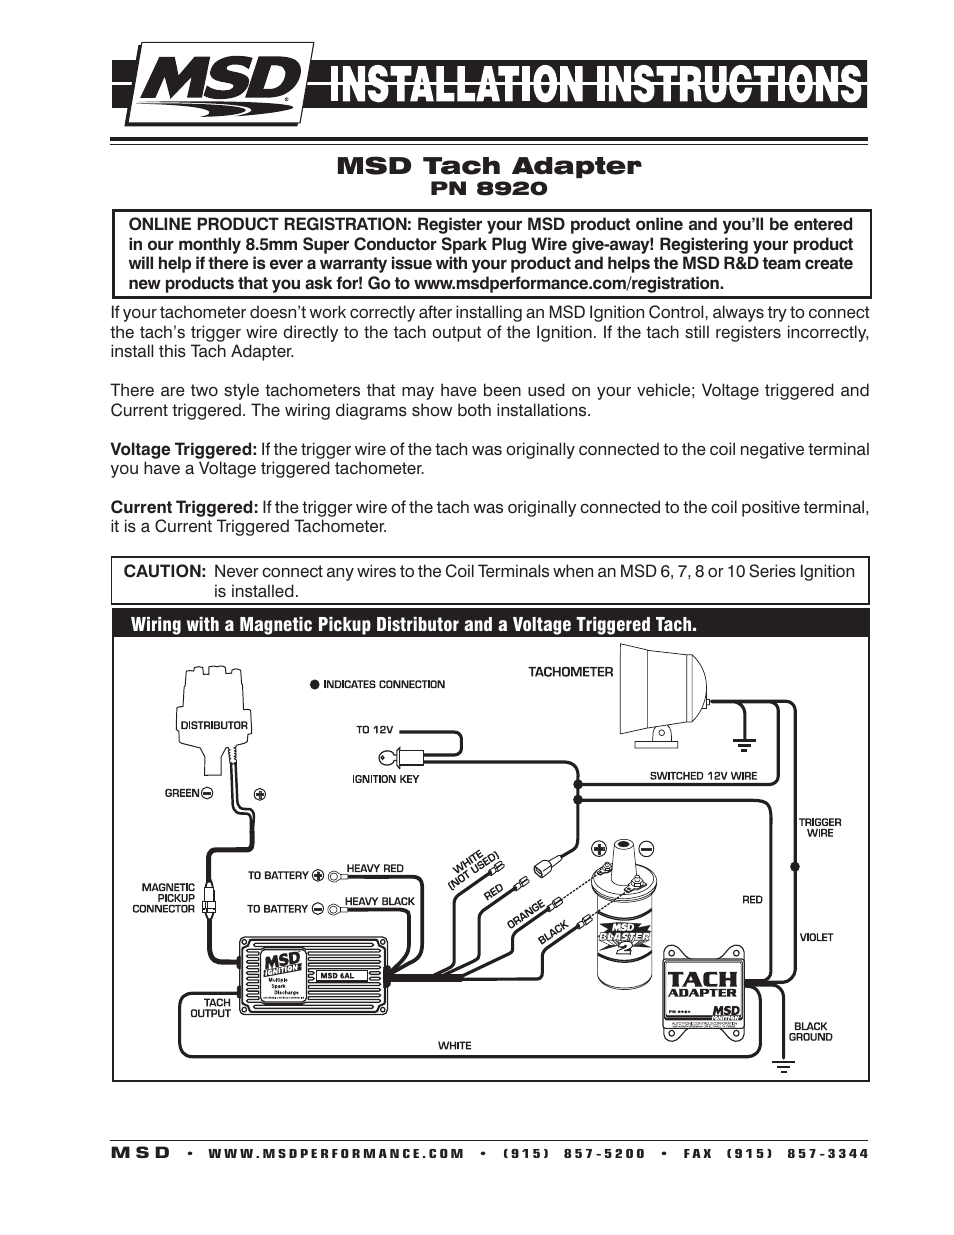 Msd Tach Wiring Diagram Detailed Schematics Accel Distributor Adapter 8920 Auto Electrical